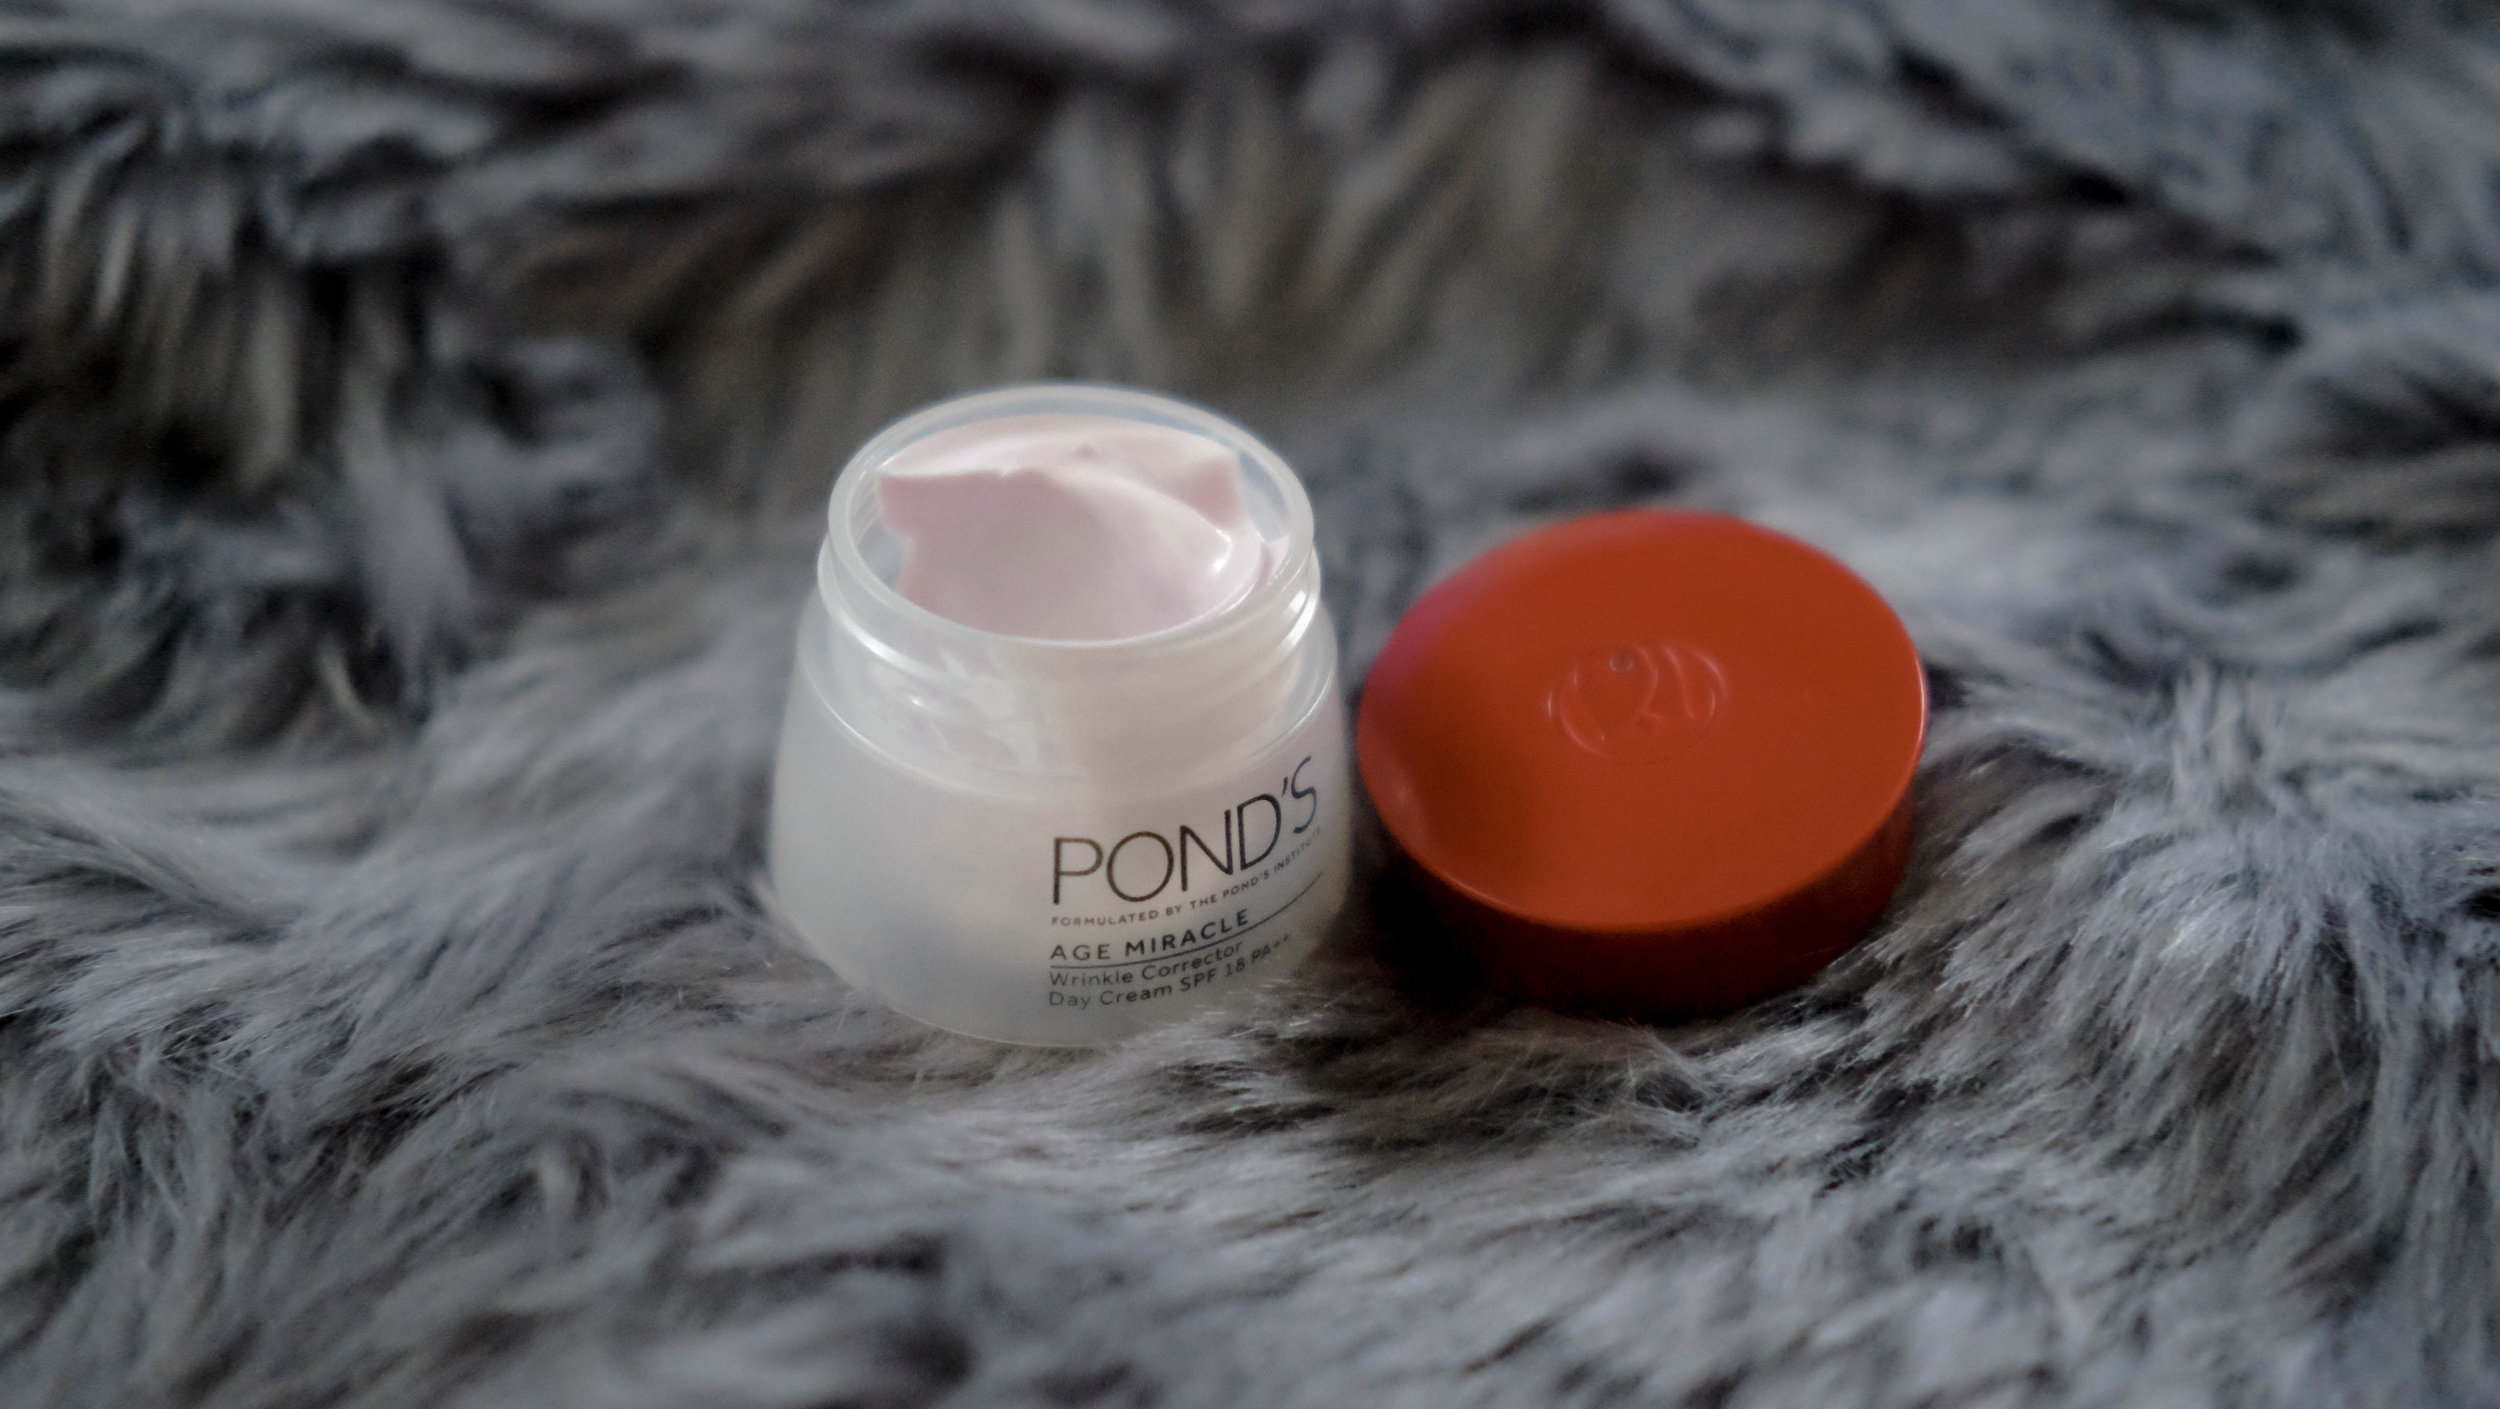 Pond's Wrinkle Correction Cream